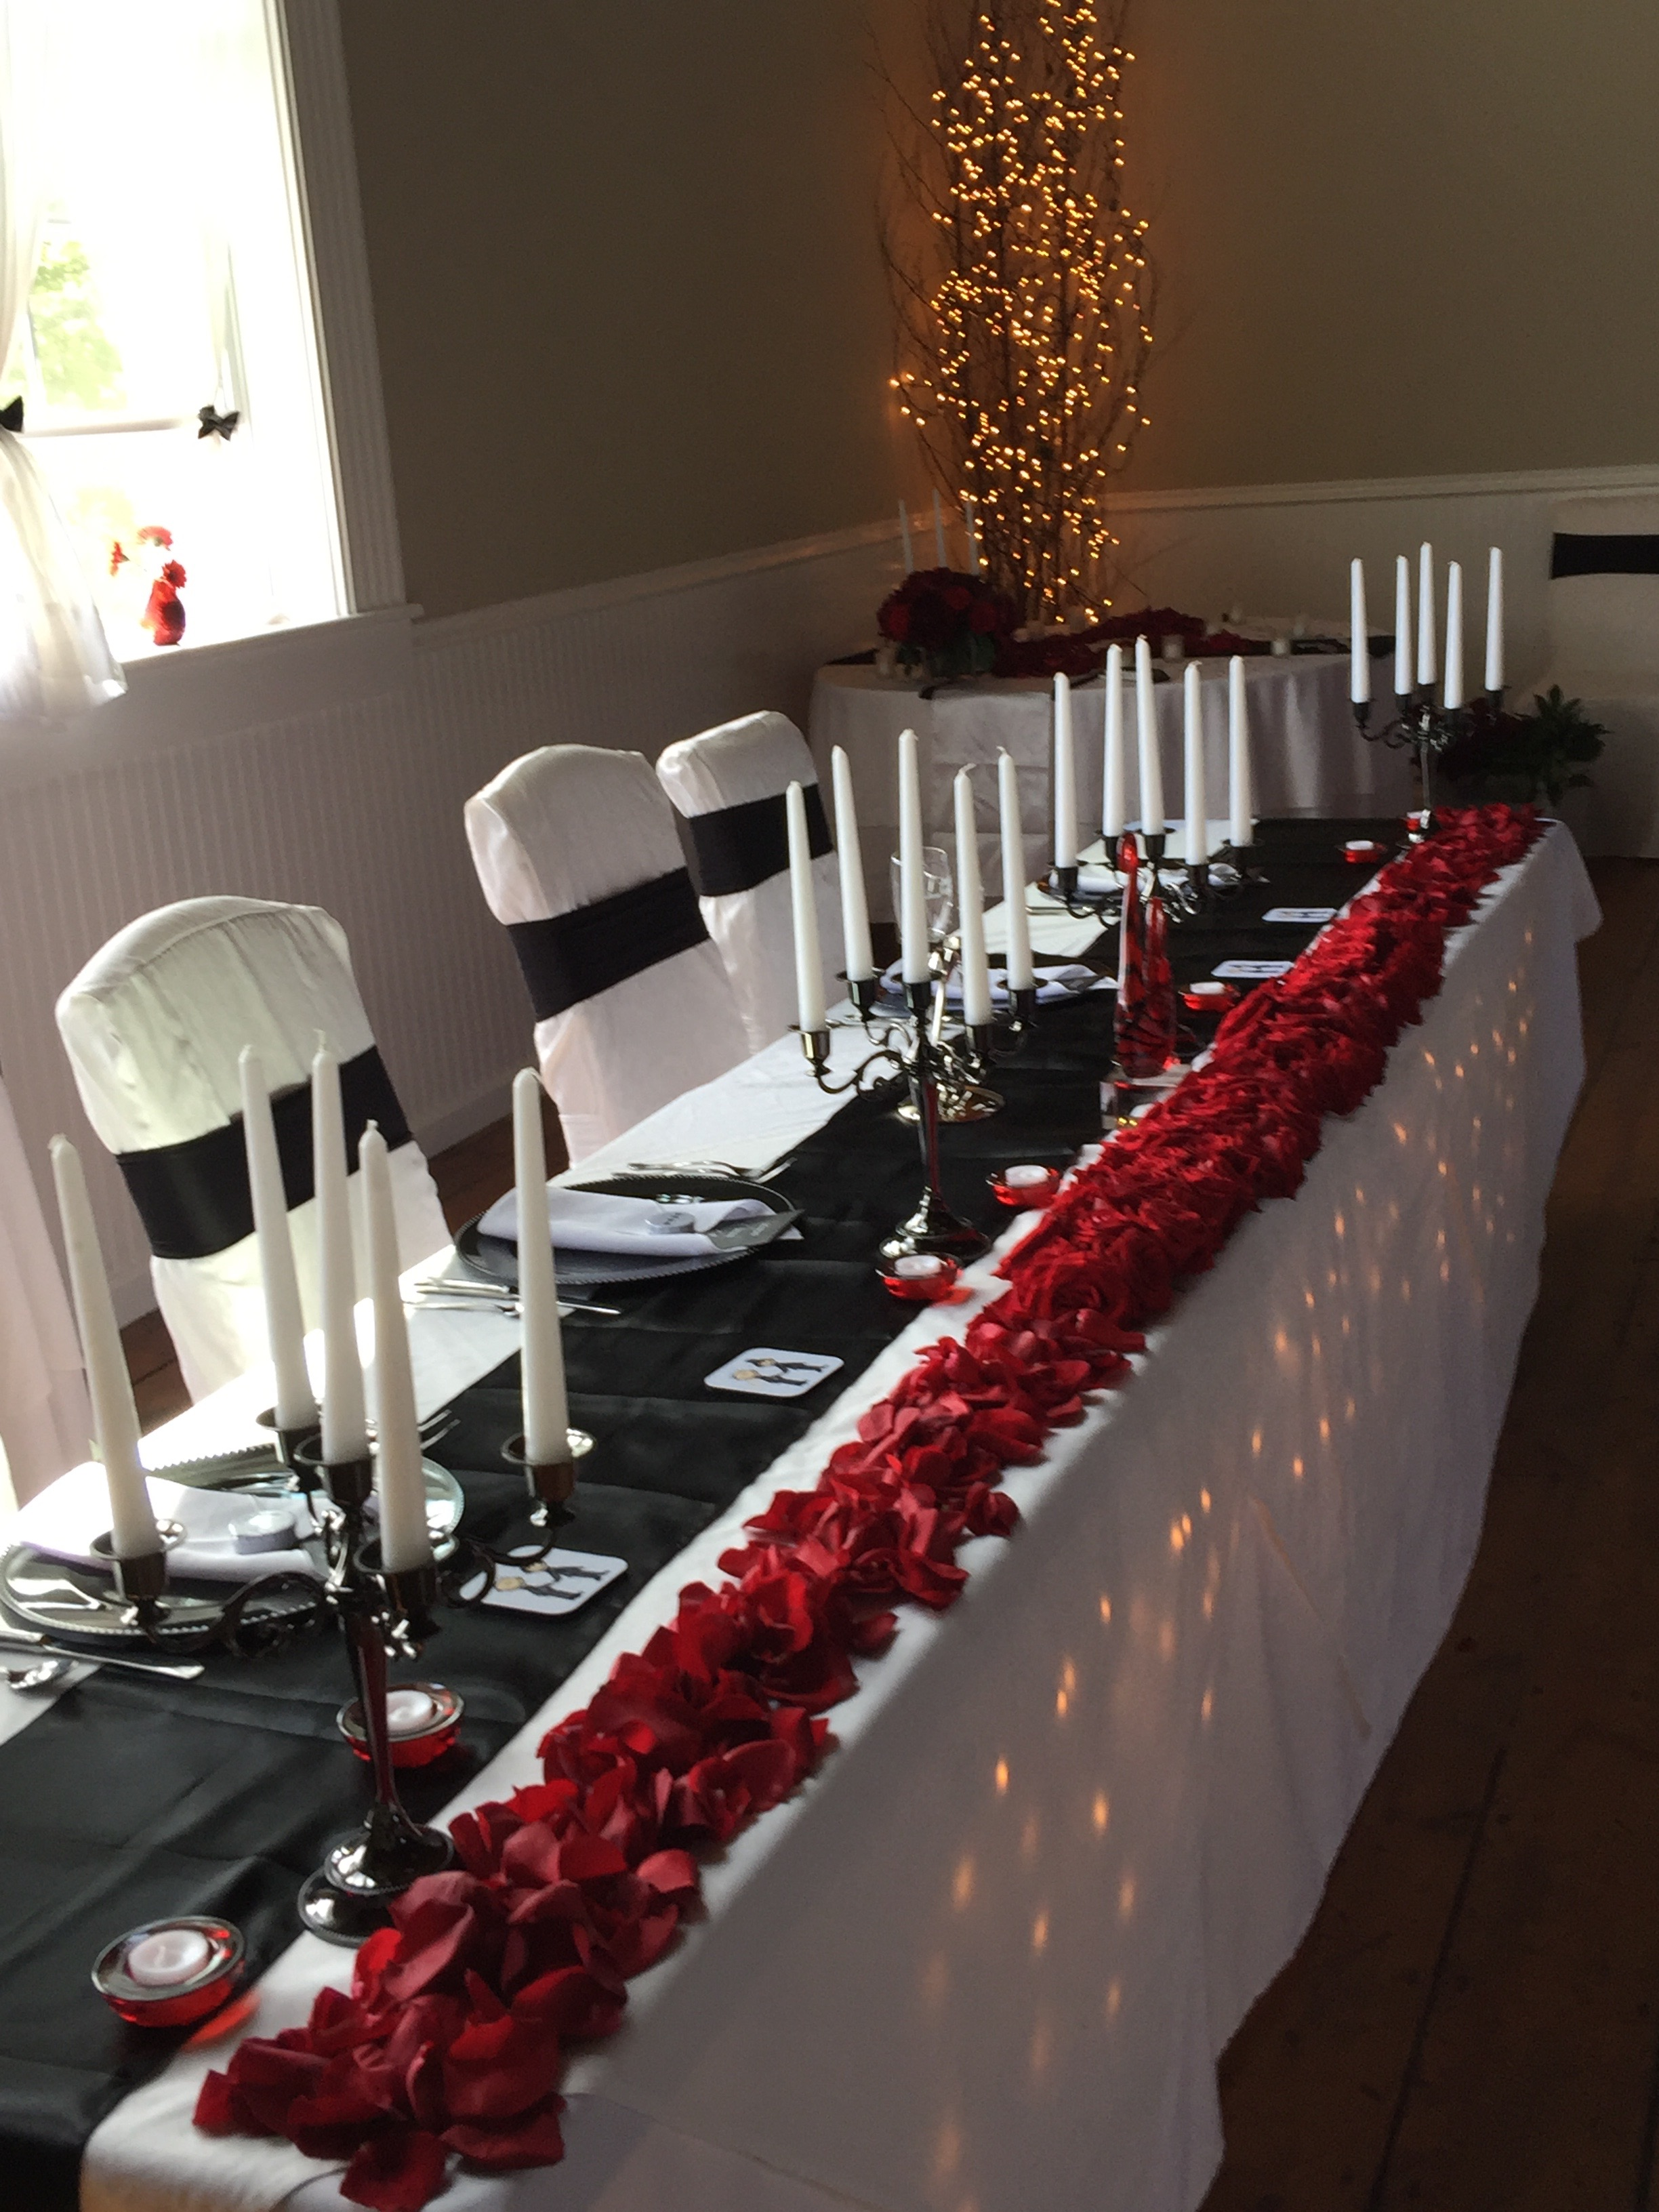 rose petals and underlighting head table.jpg